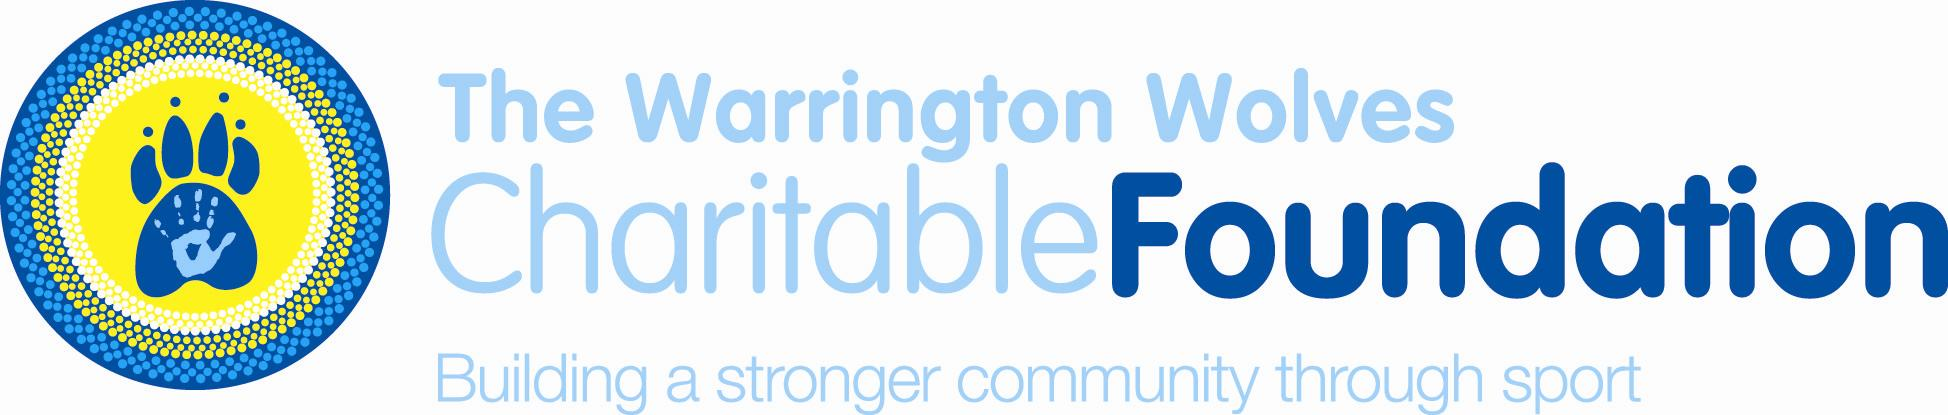 The Warrington Wolves Foundation